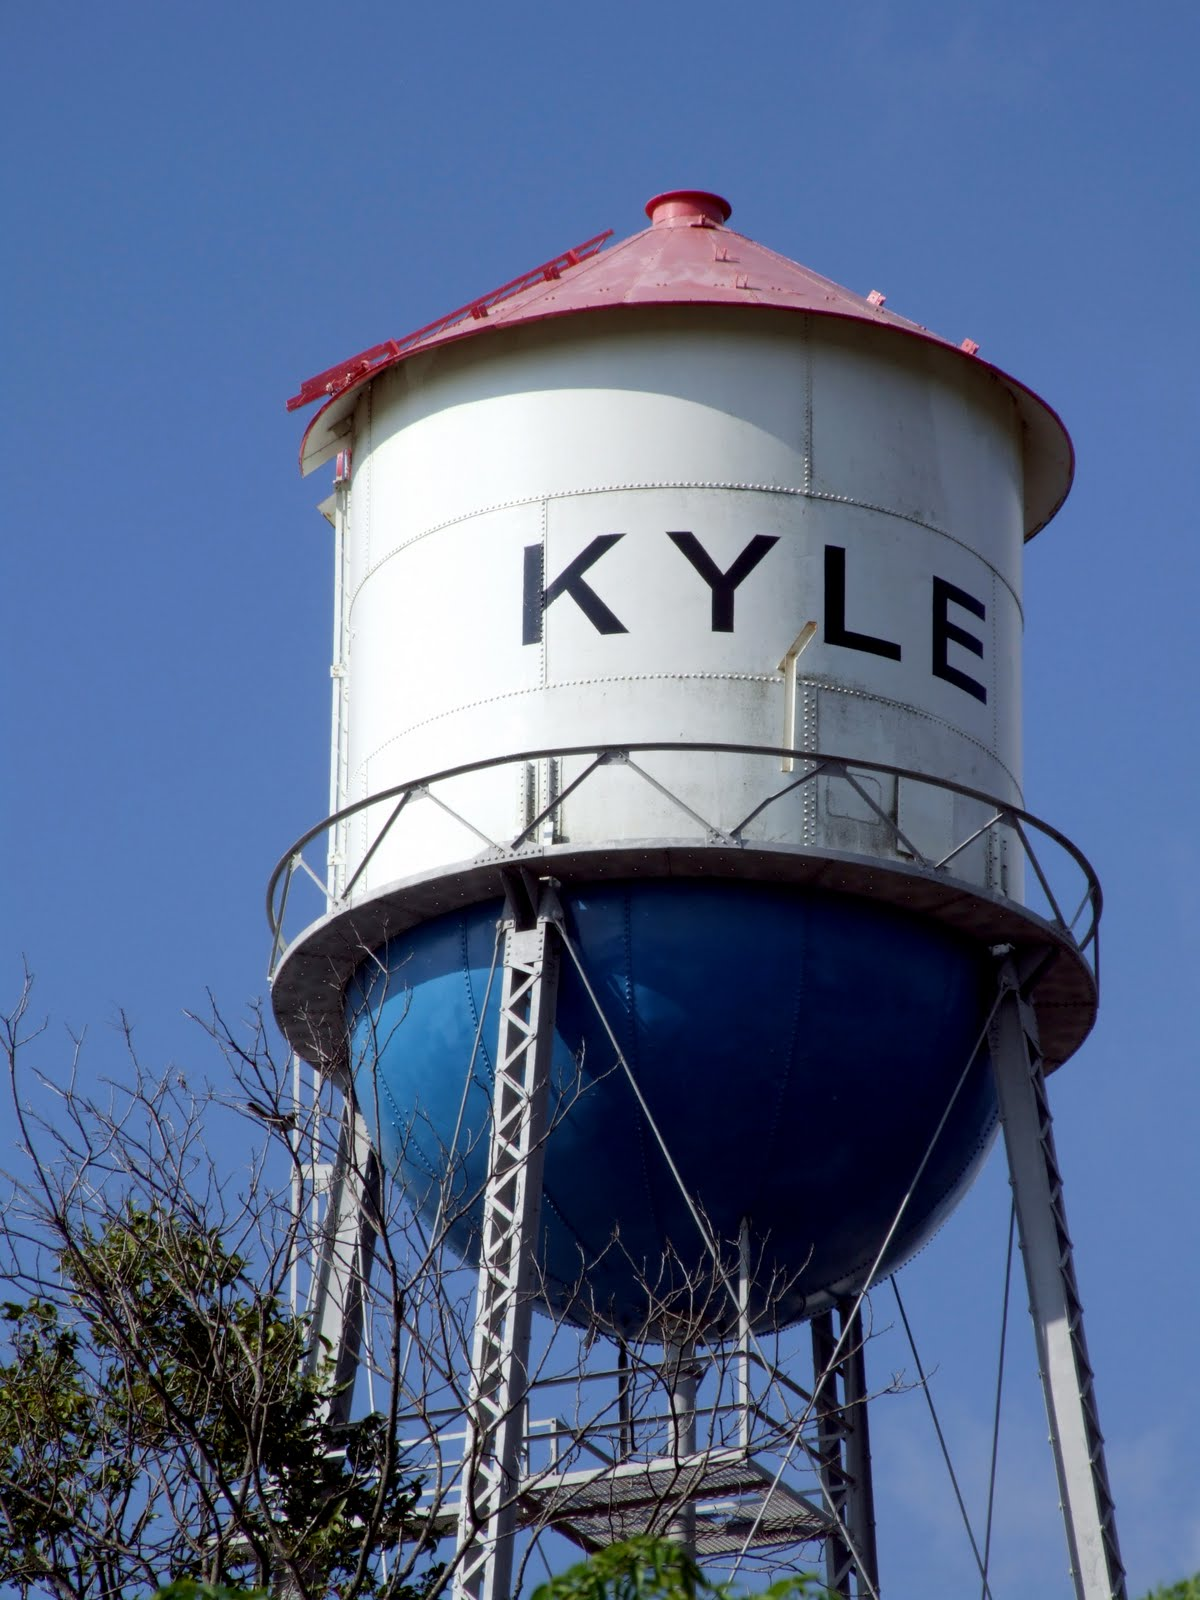 Water Tower Homes Kyle Tx Real Estate Lifestyle Kyle Tx Homes For Sale